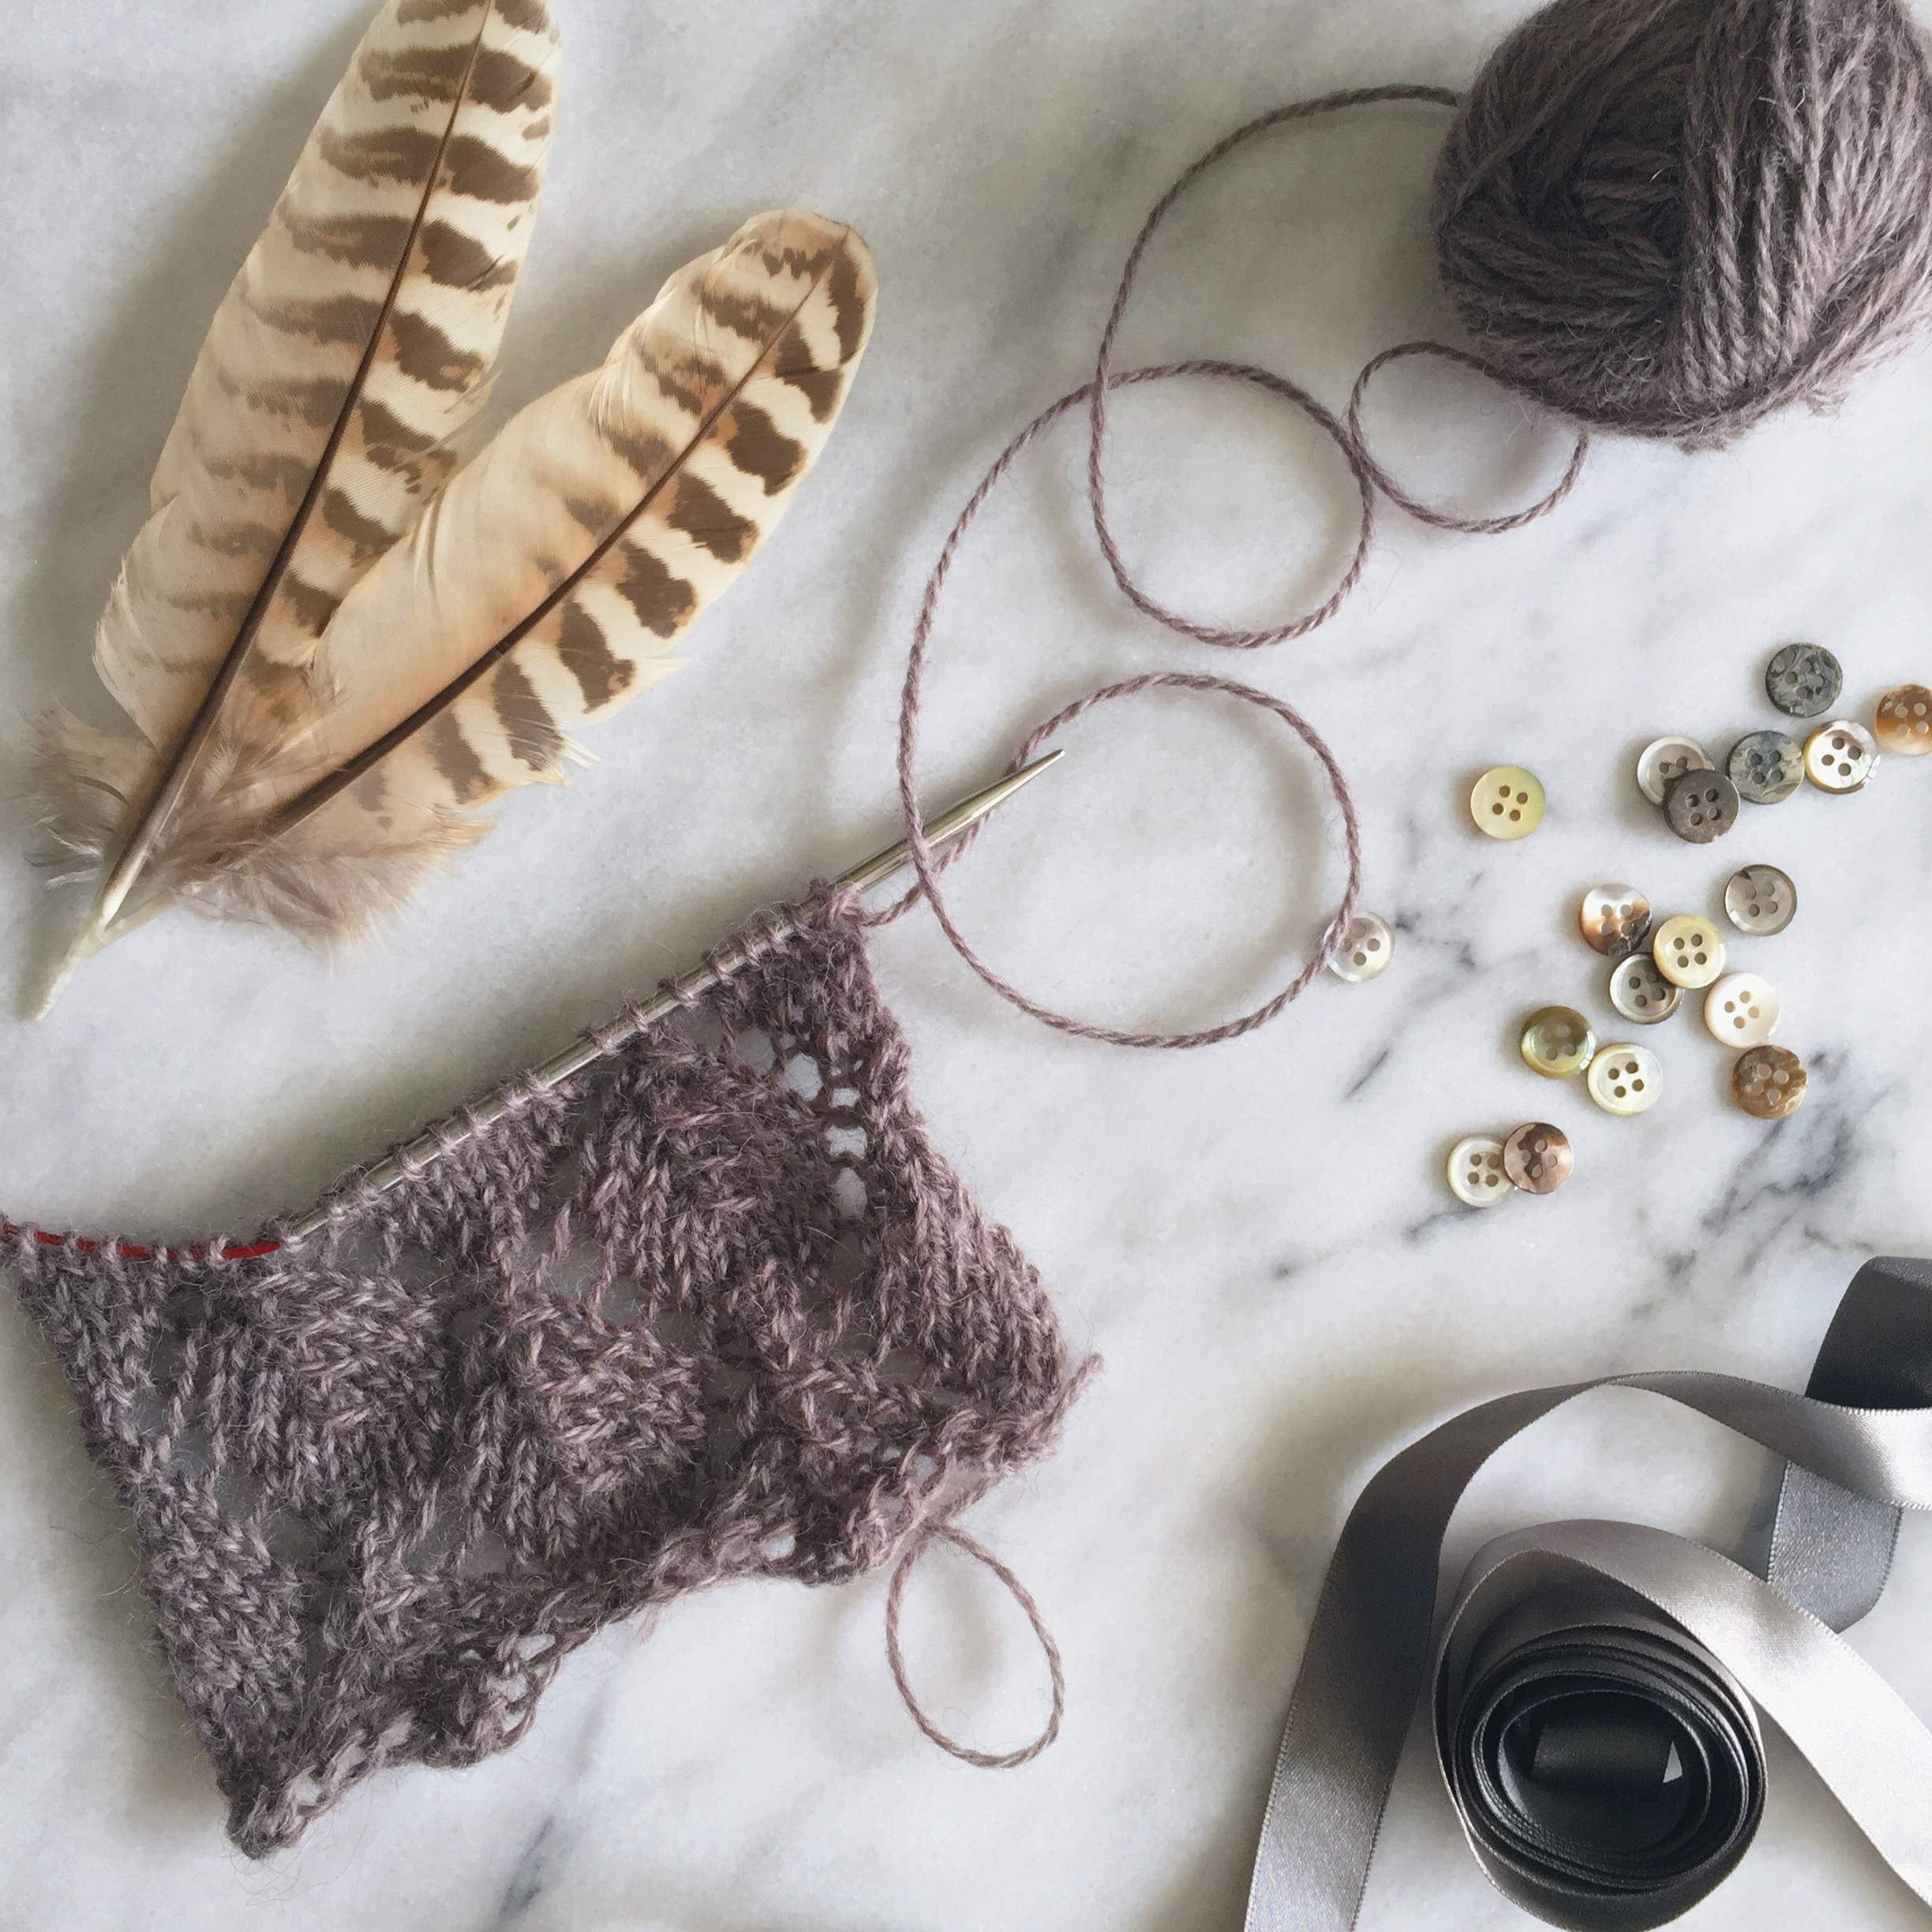 13 Instagram Hashtags for Makers